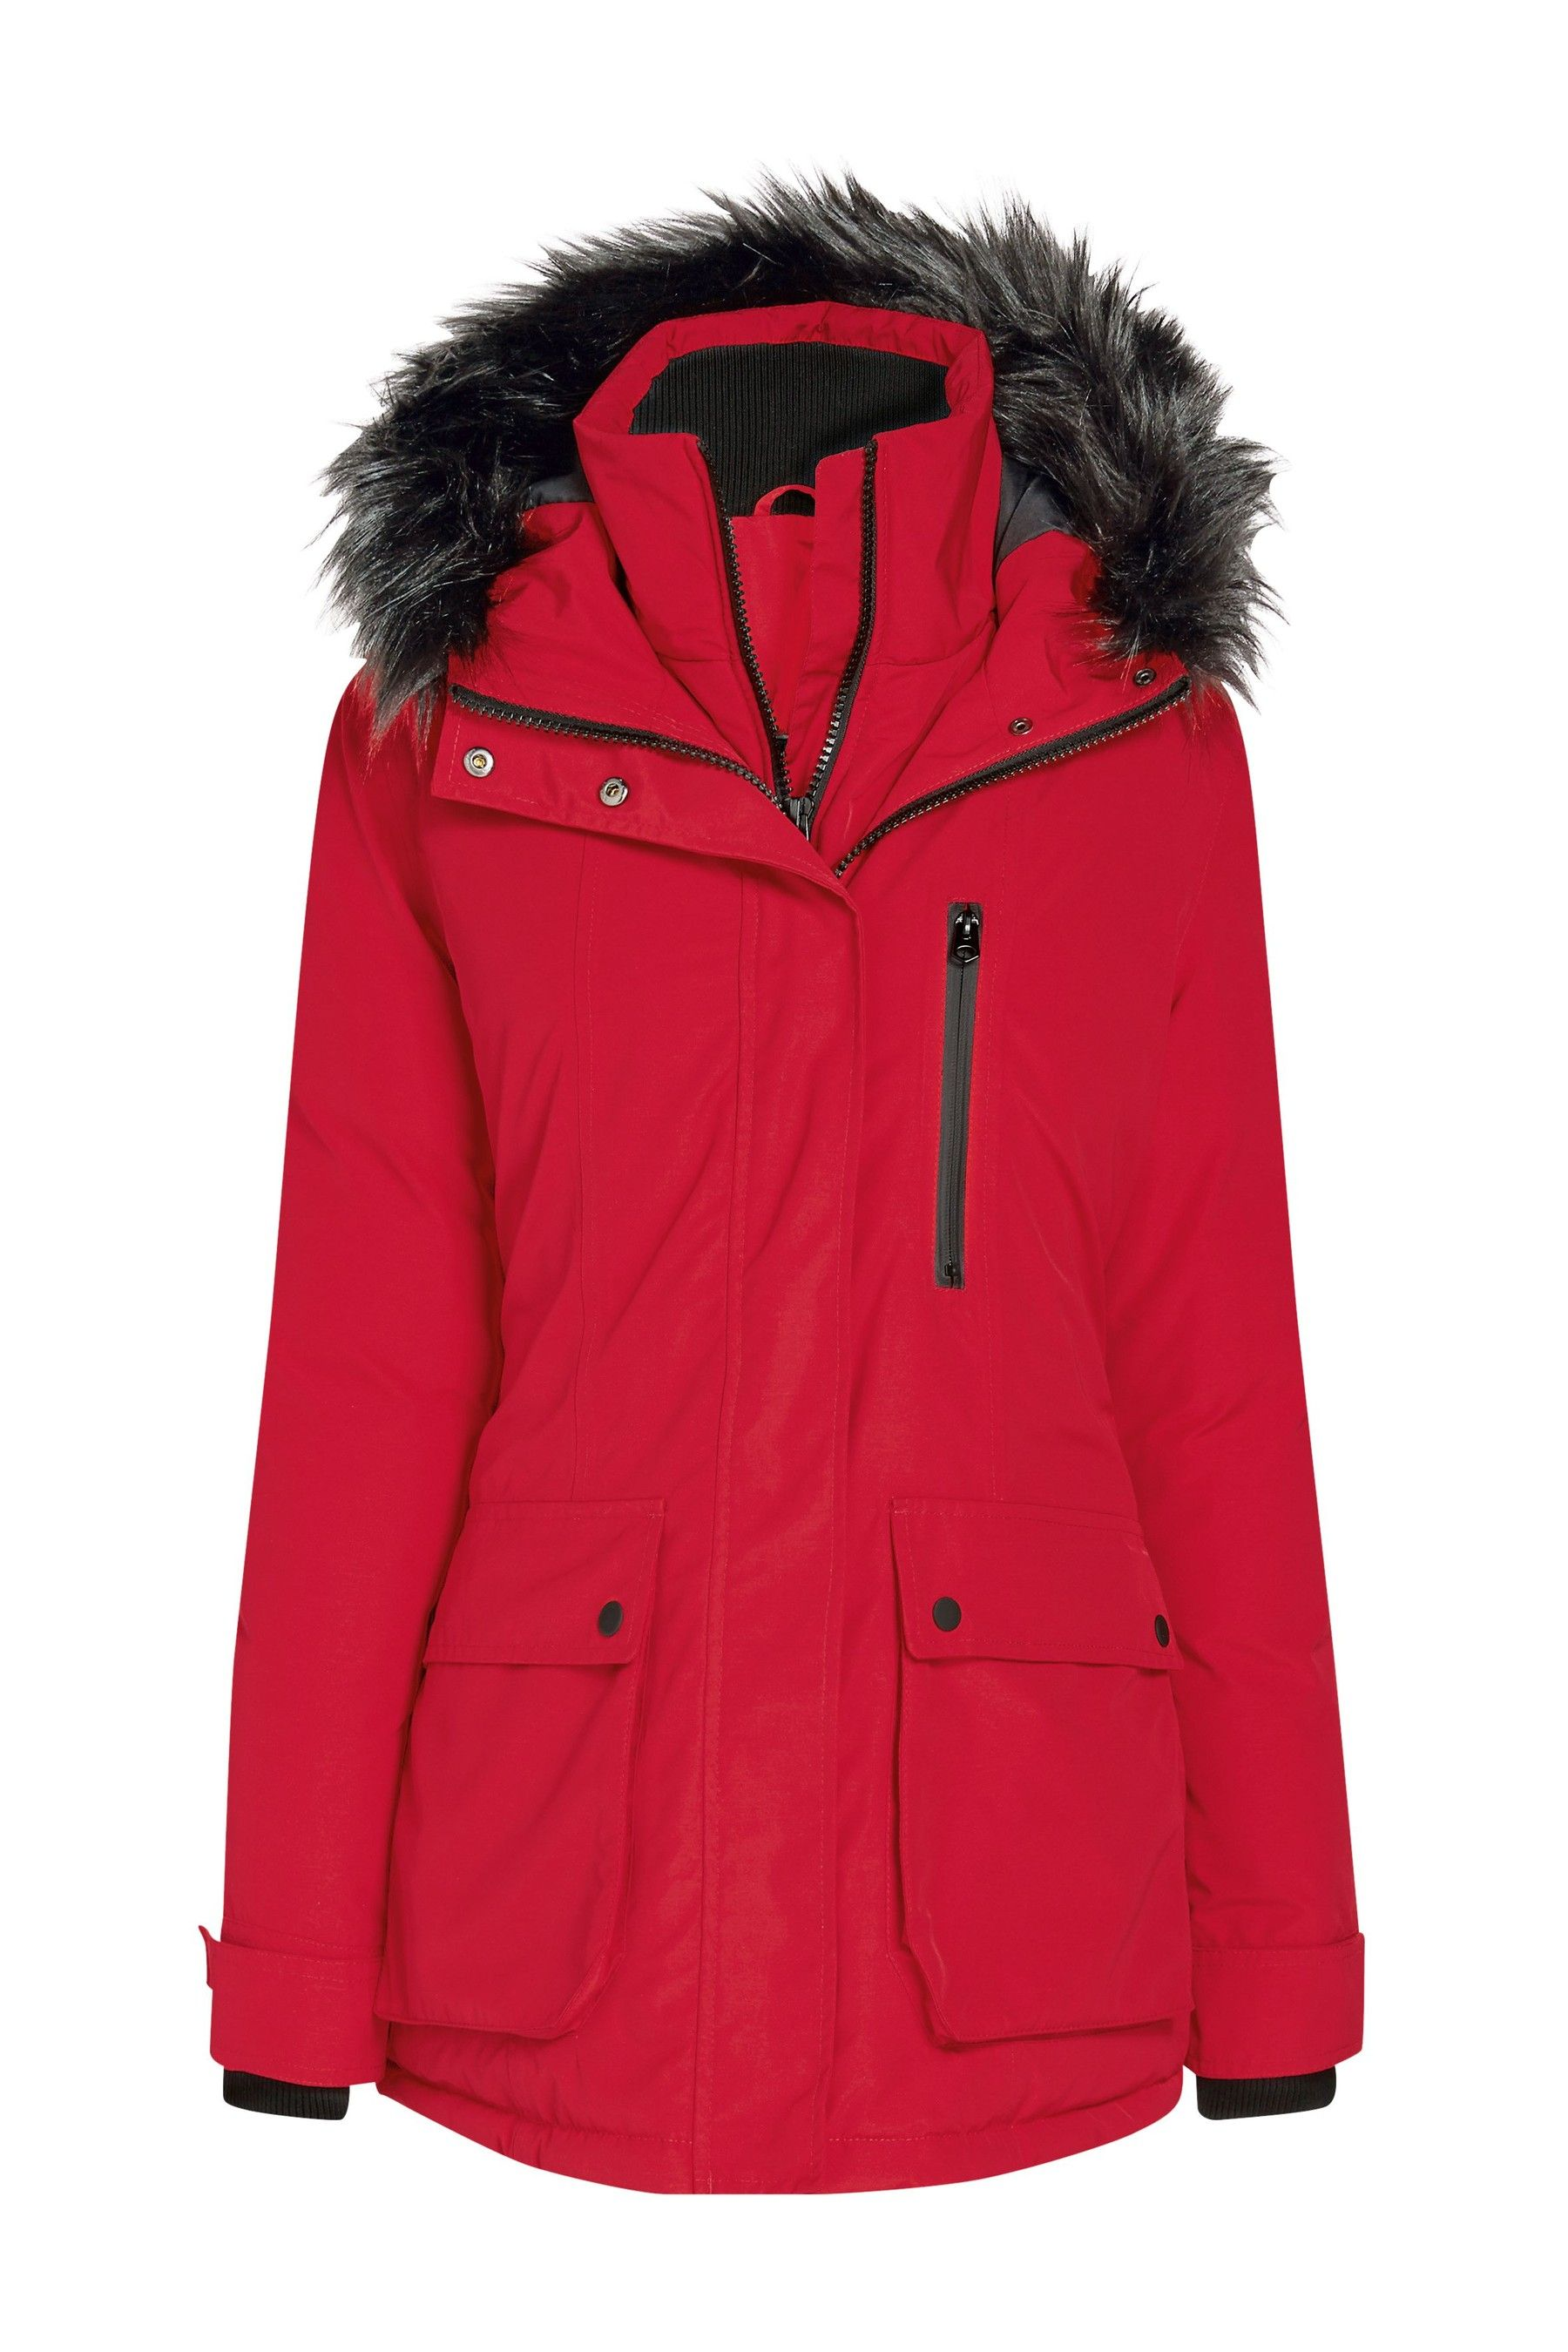 7ebb2e6f3 Womens Next Red Waterproof Technical Padded Jacket - Red   Products ...